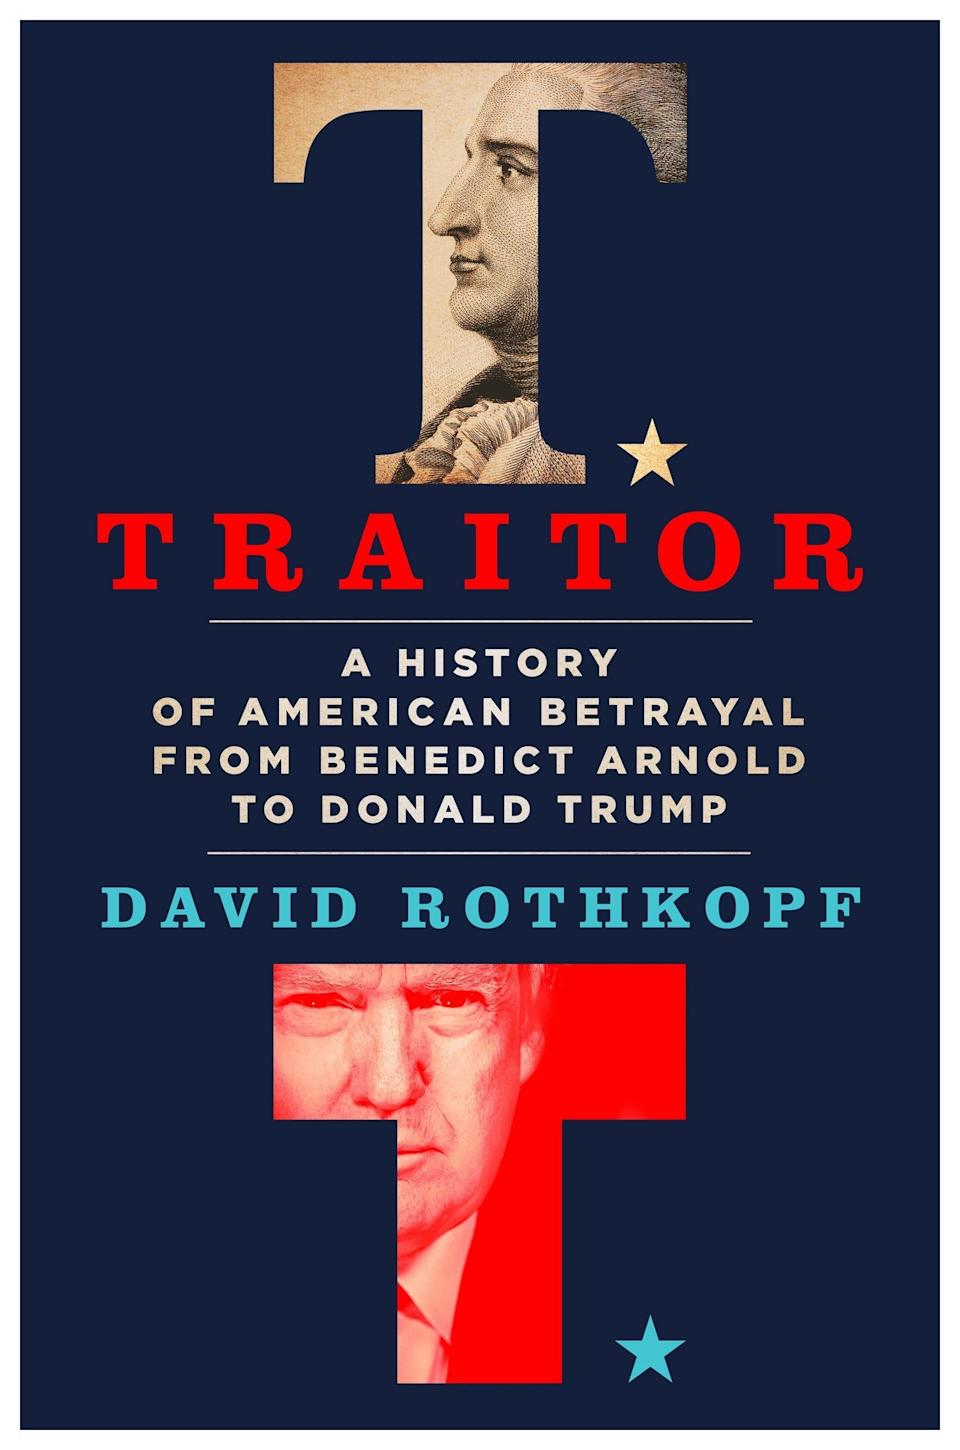 Cover of 'Traitor: A History of American Betrayal From Benedict Arnold to Donald Trump,' by David Rothkopf, published Oct. 27, 2020.